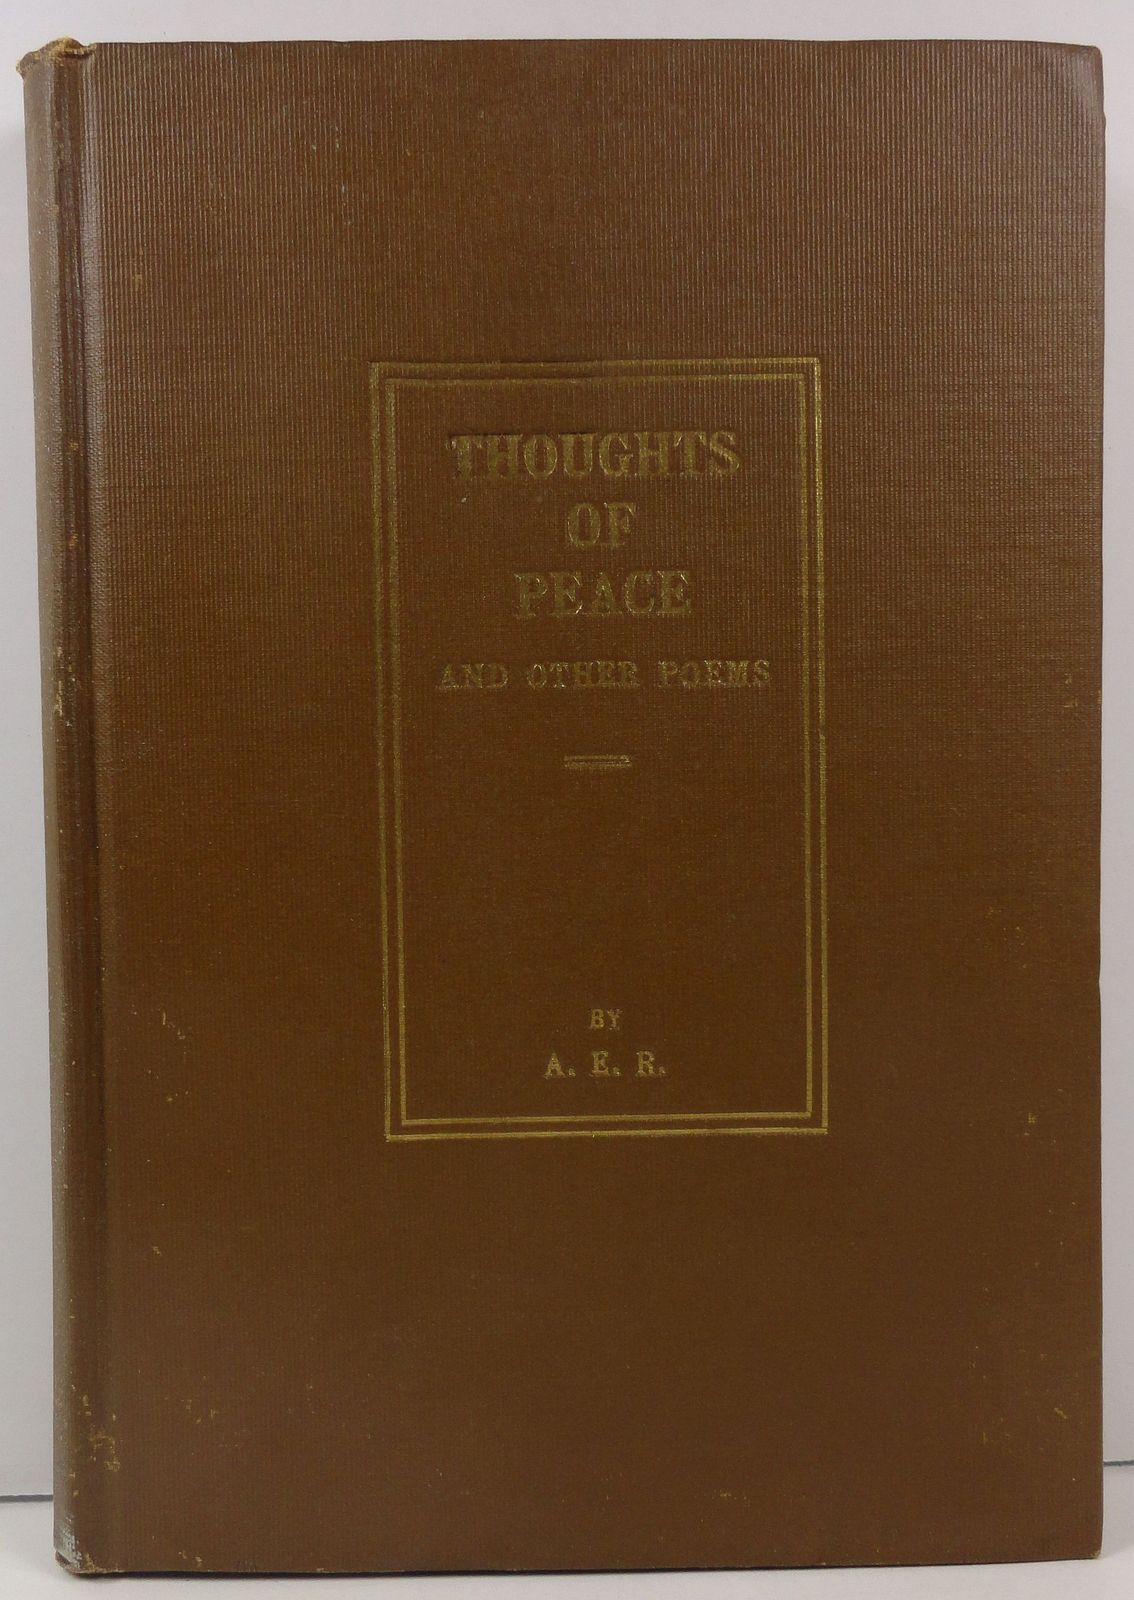 Thoughts of Peace and Other Poems by A. E. R. 1913